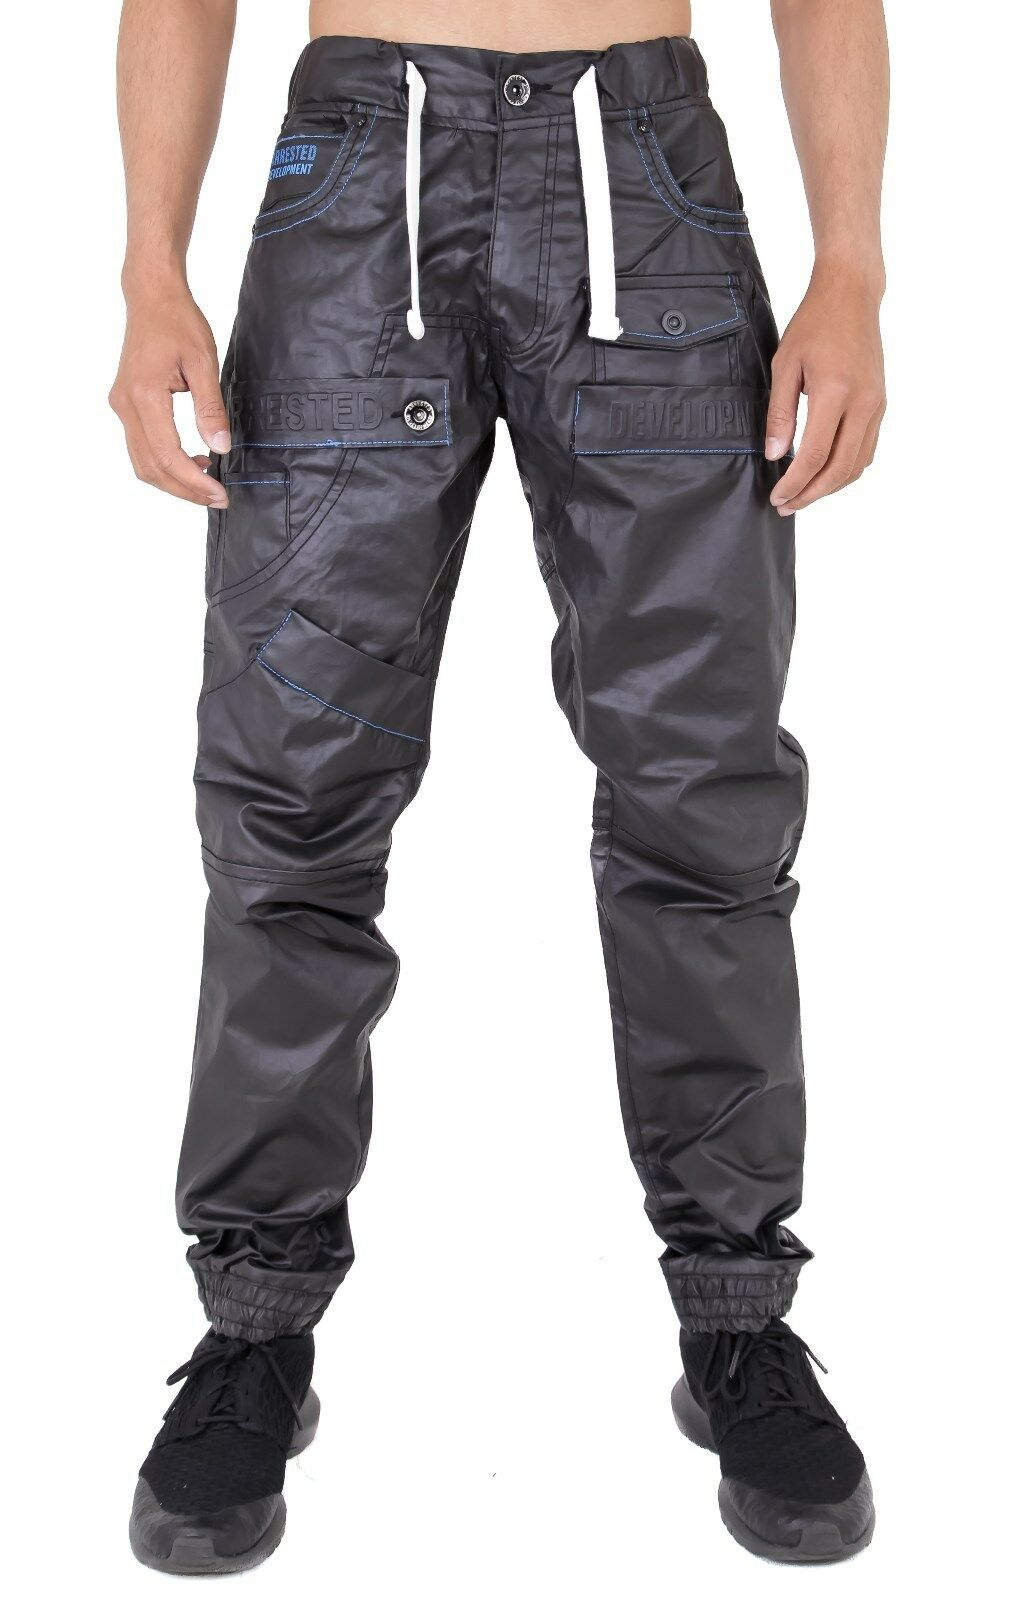 New Mens Wet Look Cuffed Jeans Joggers Casual Fashion By